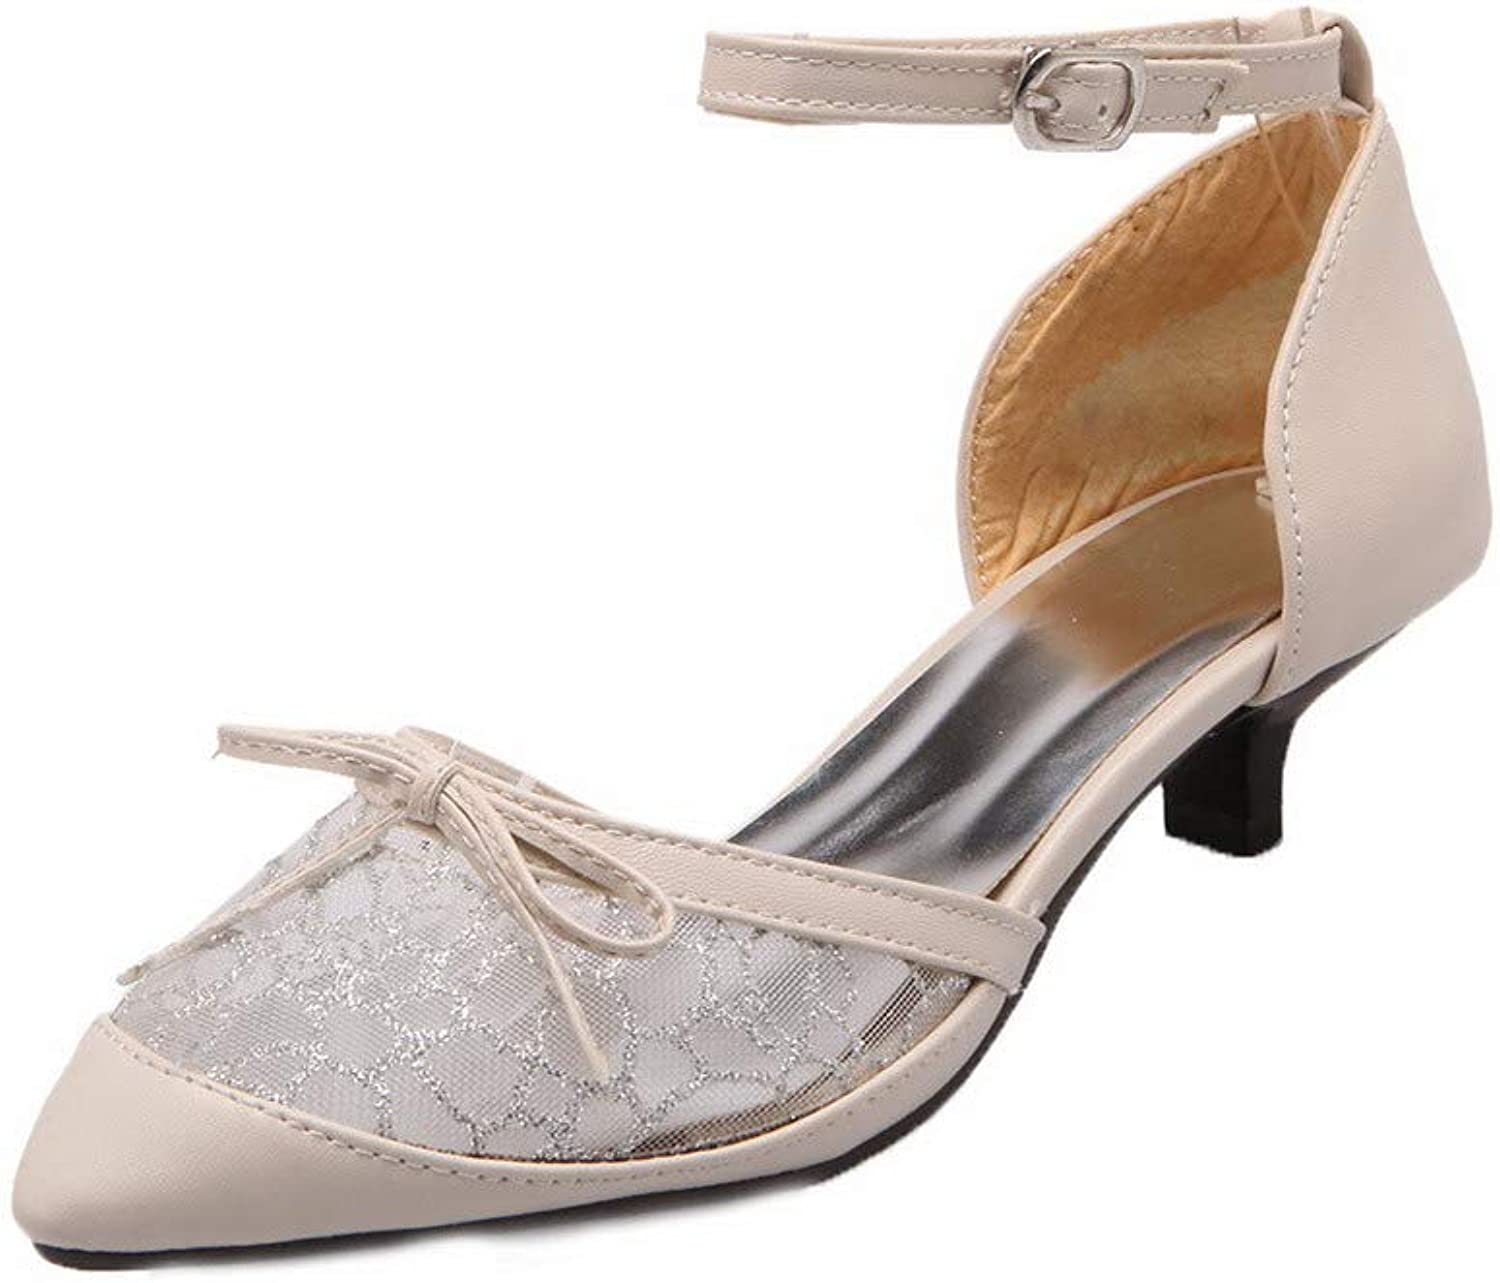 WeiPoot Women's Buckle Blend Materials Closed-Toe Low-Heels Solid Sandals,EGHLH007115